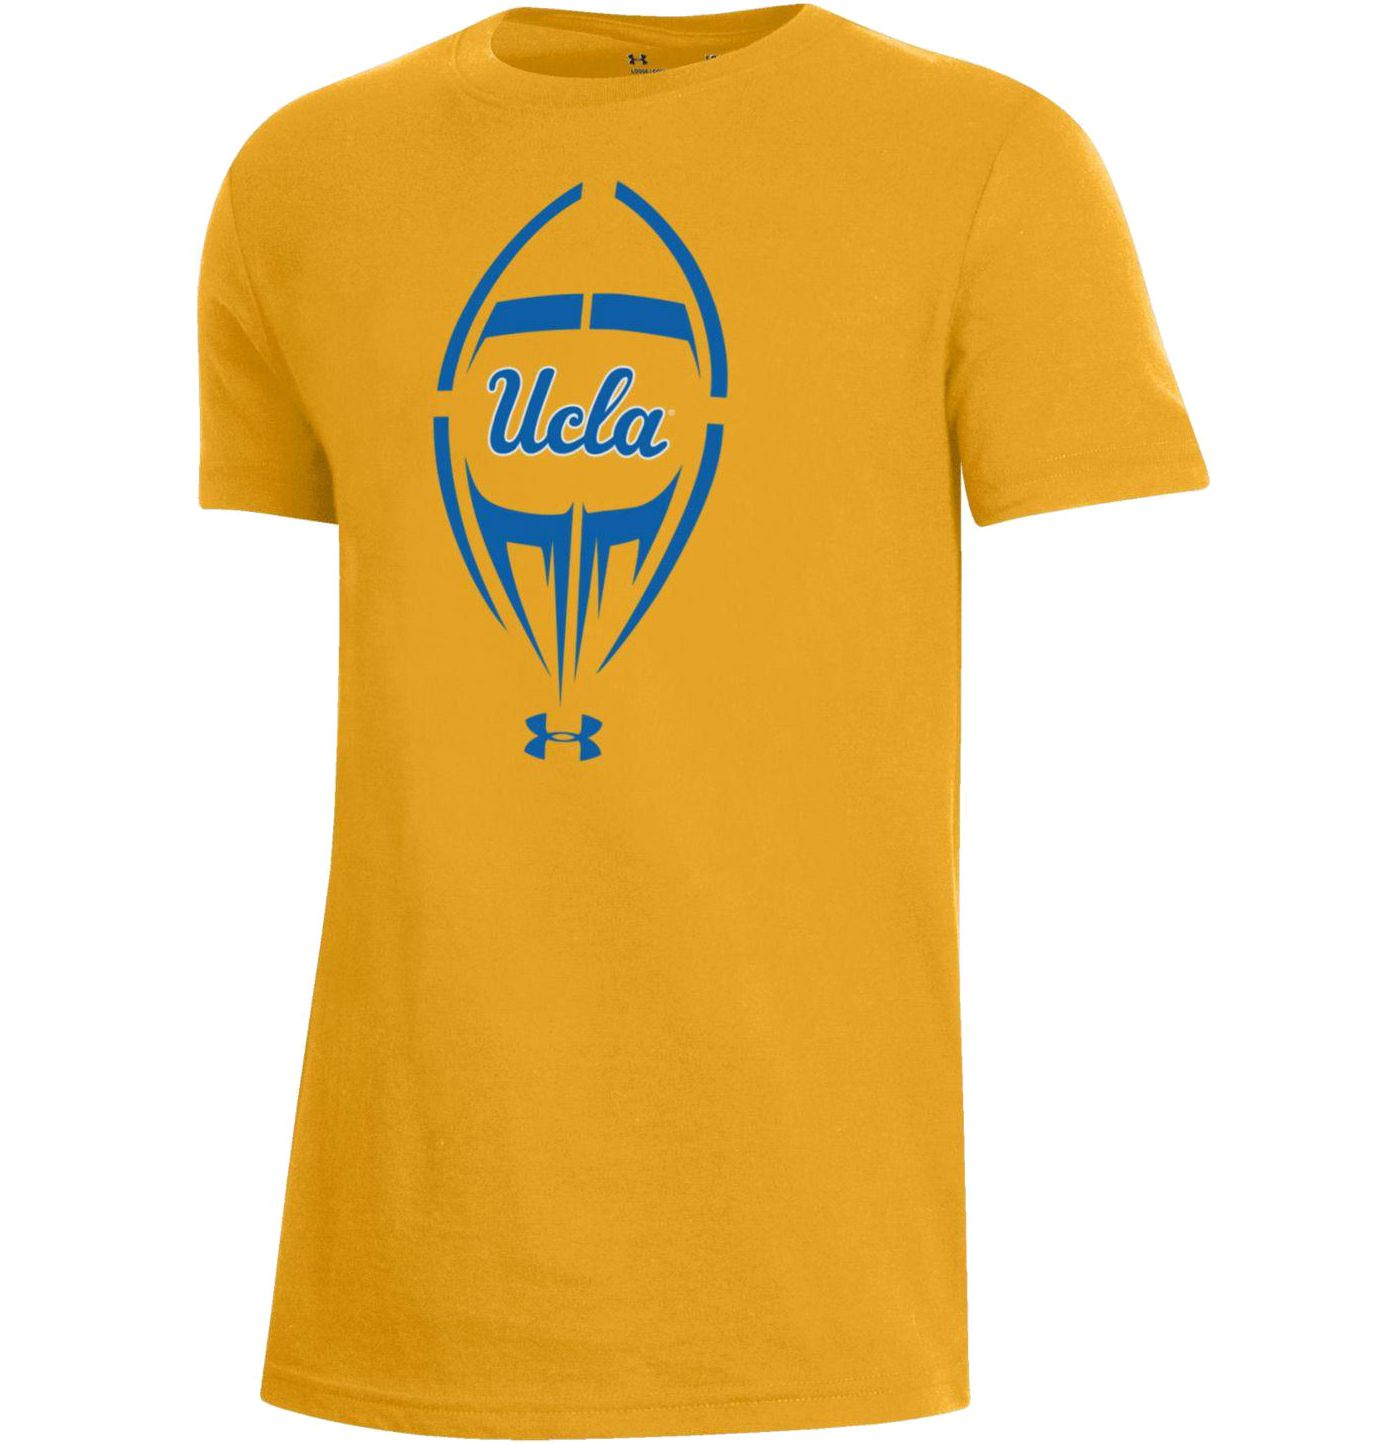 Under Armour Youth UCLA Bruins Gold Performance Cotton Football T-Shirt